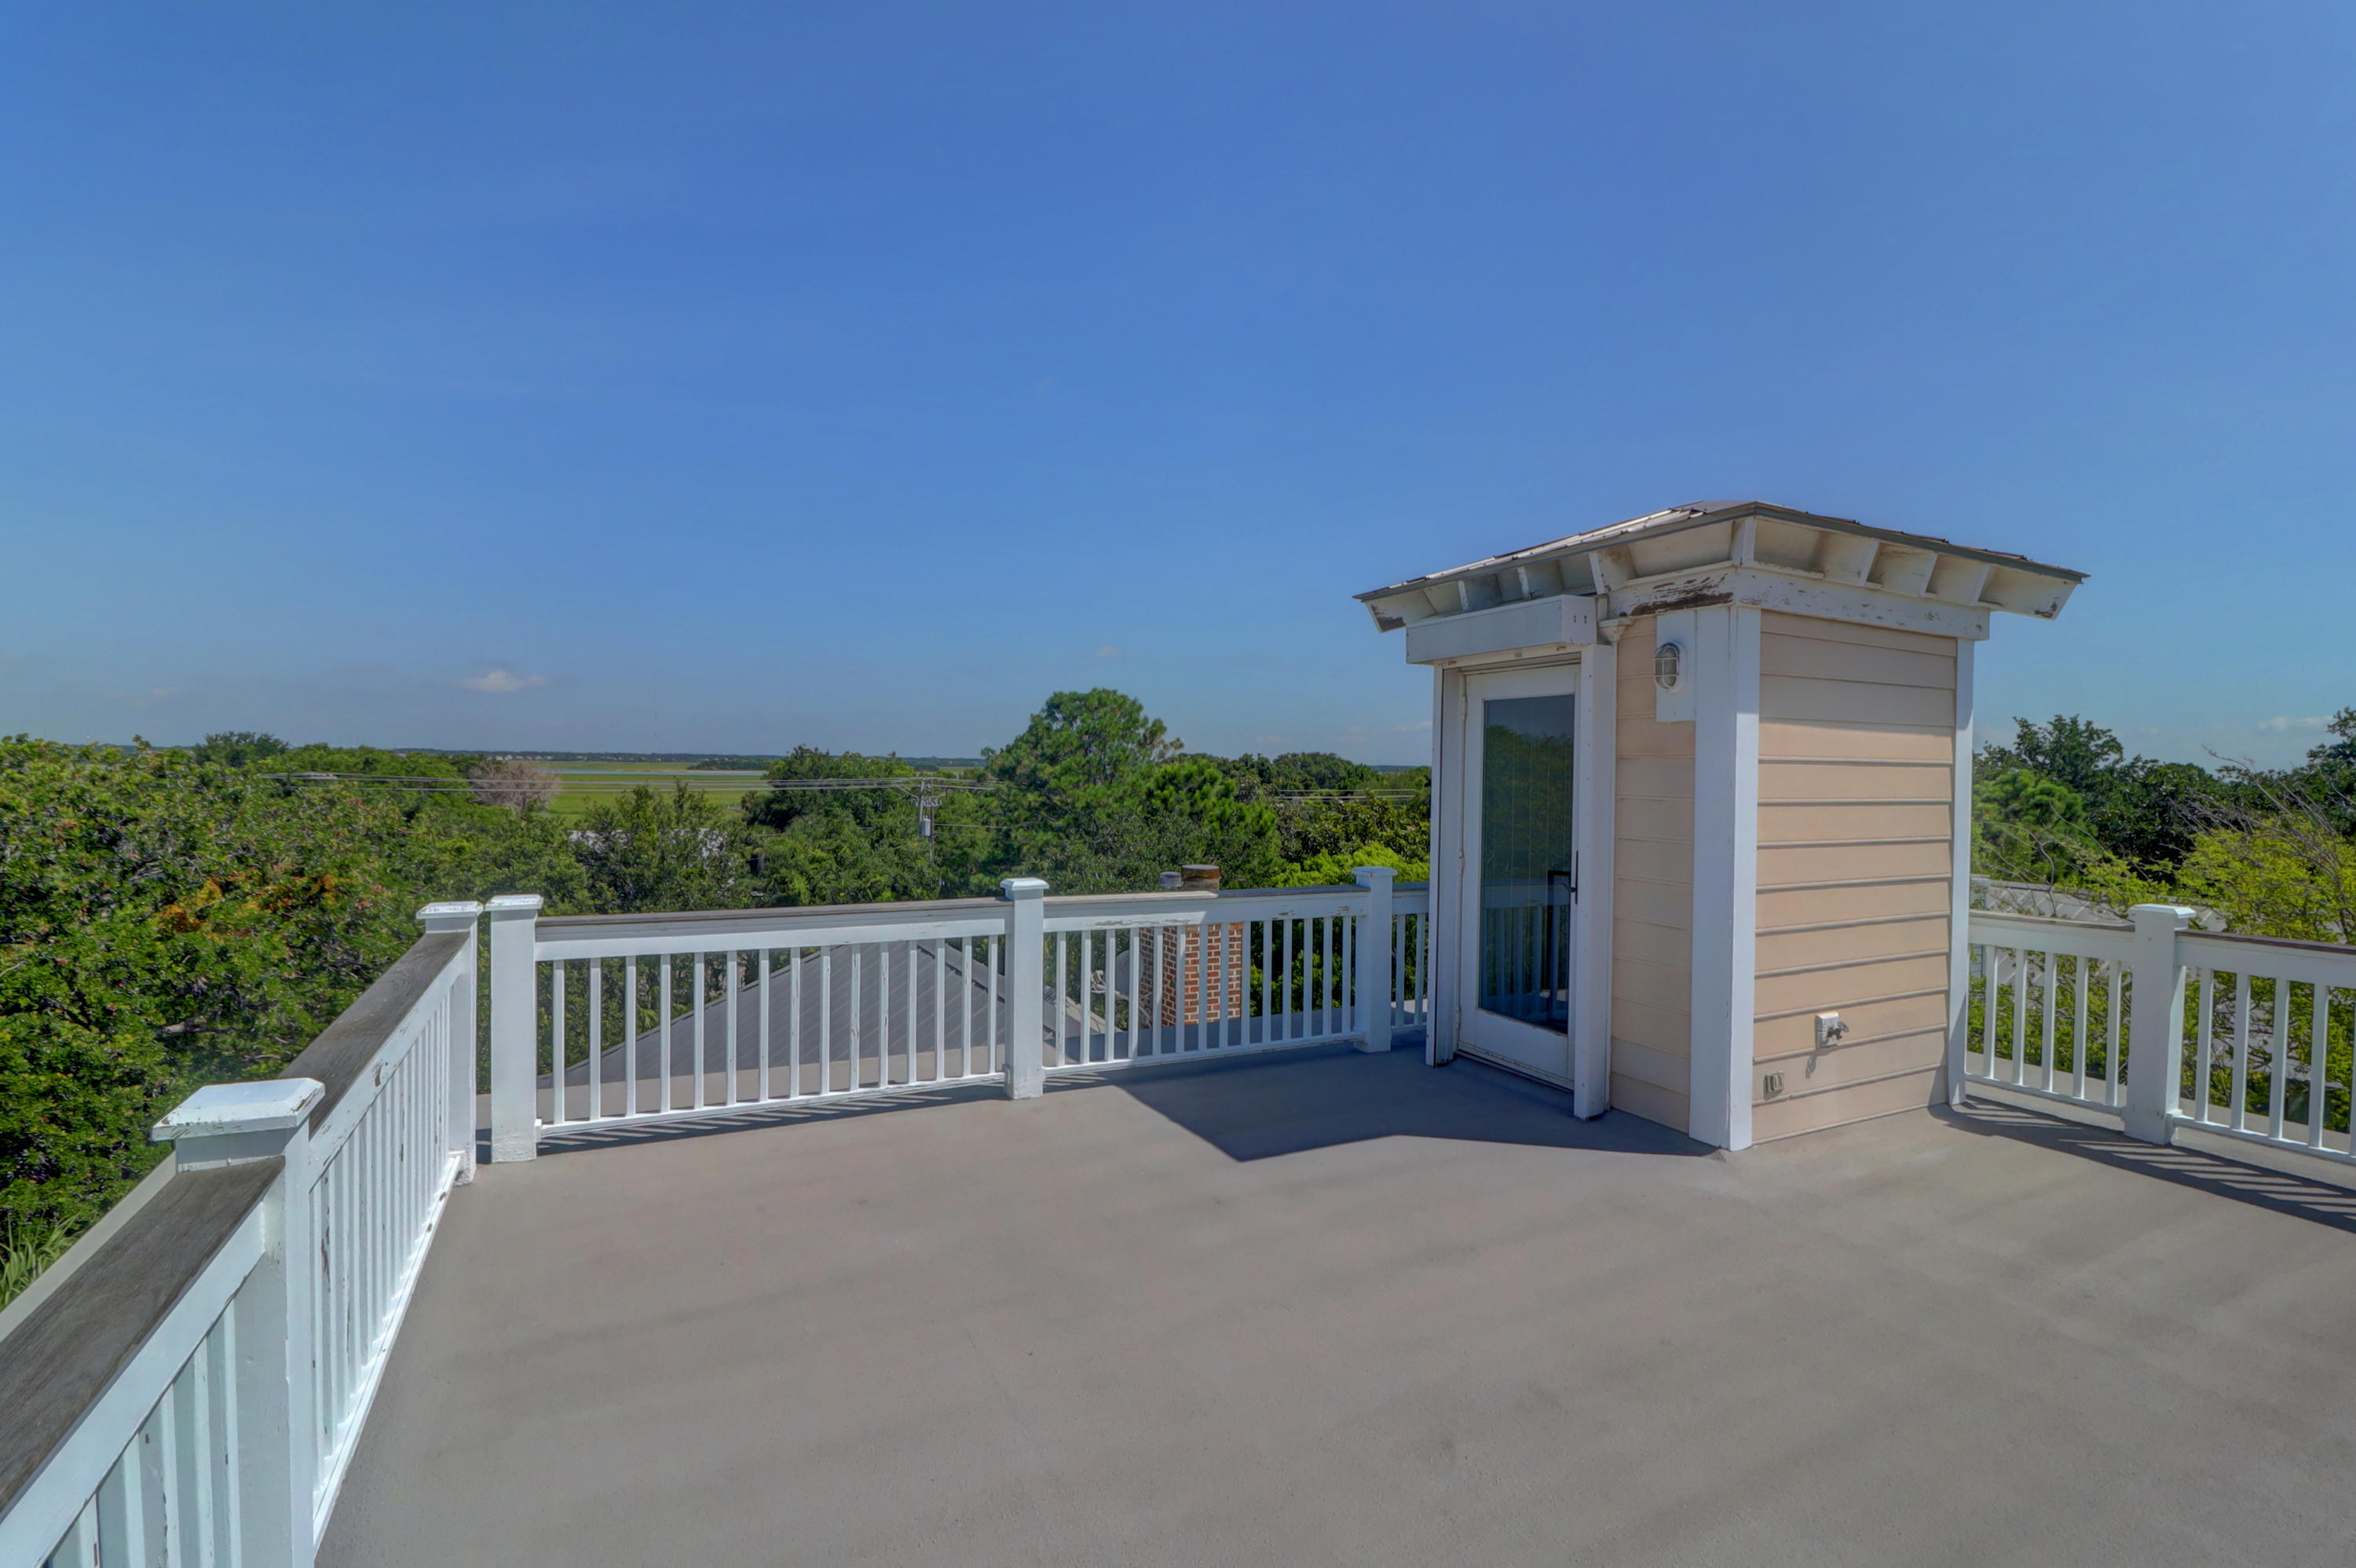 Sullivans Island Homes For Sale - 320 Station 28 1/2, Sullivans Island, SC - 30